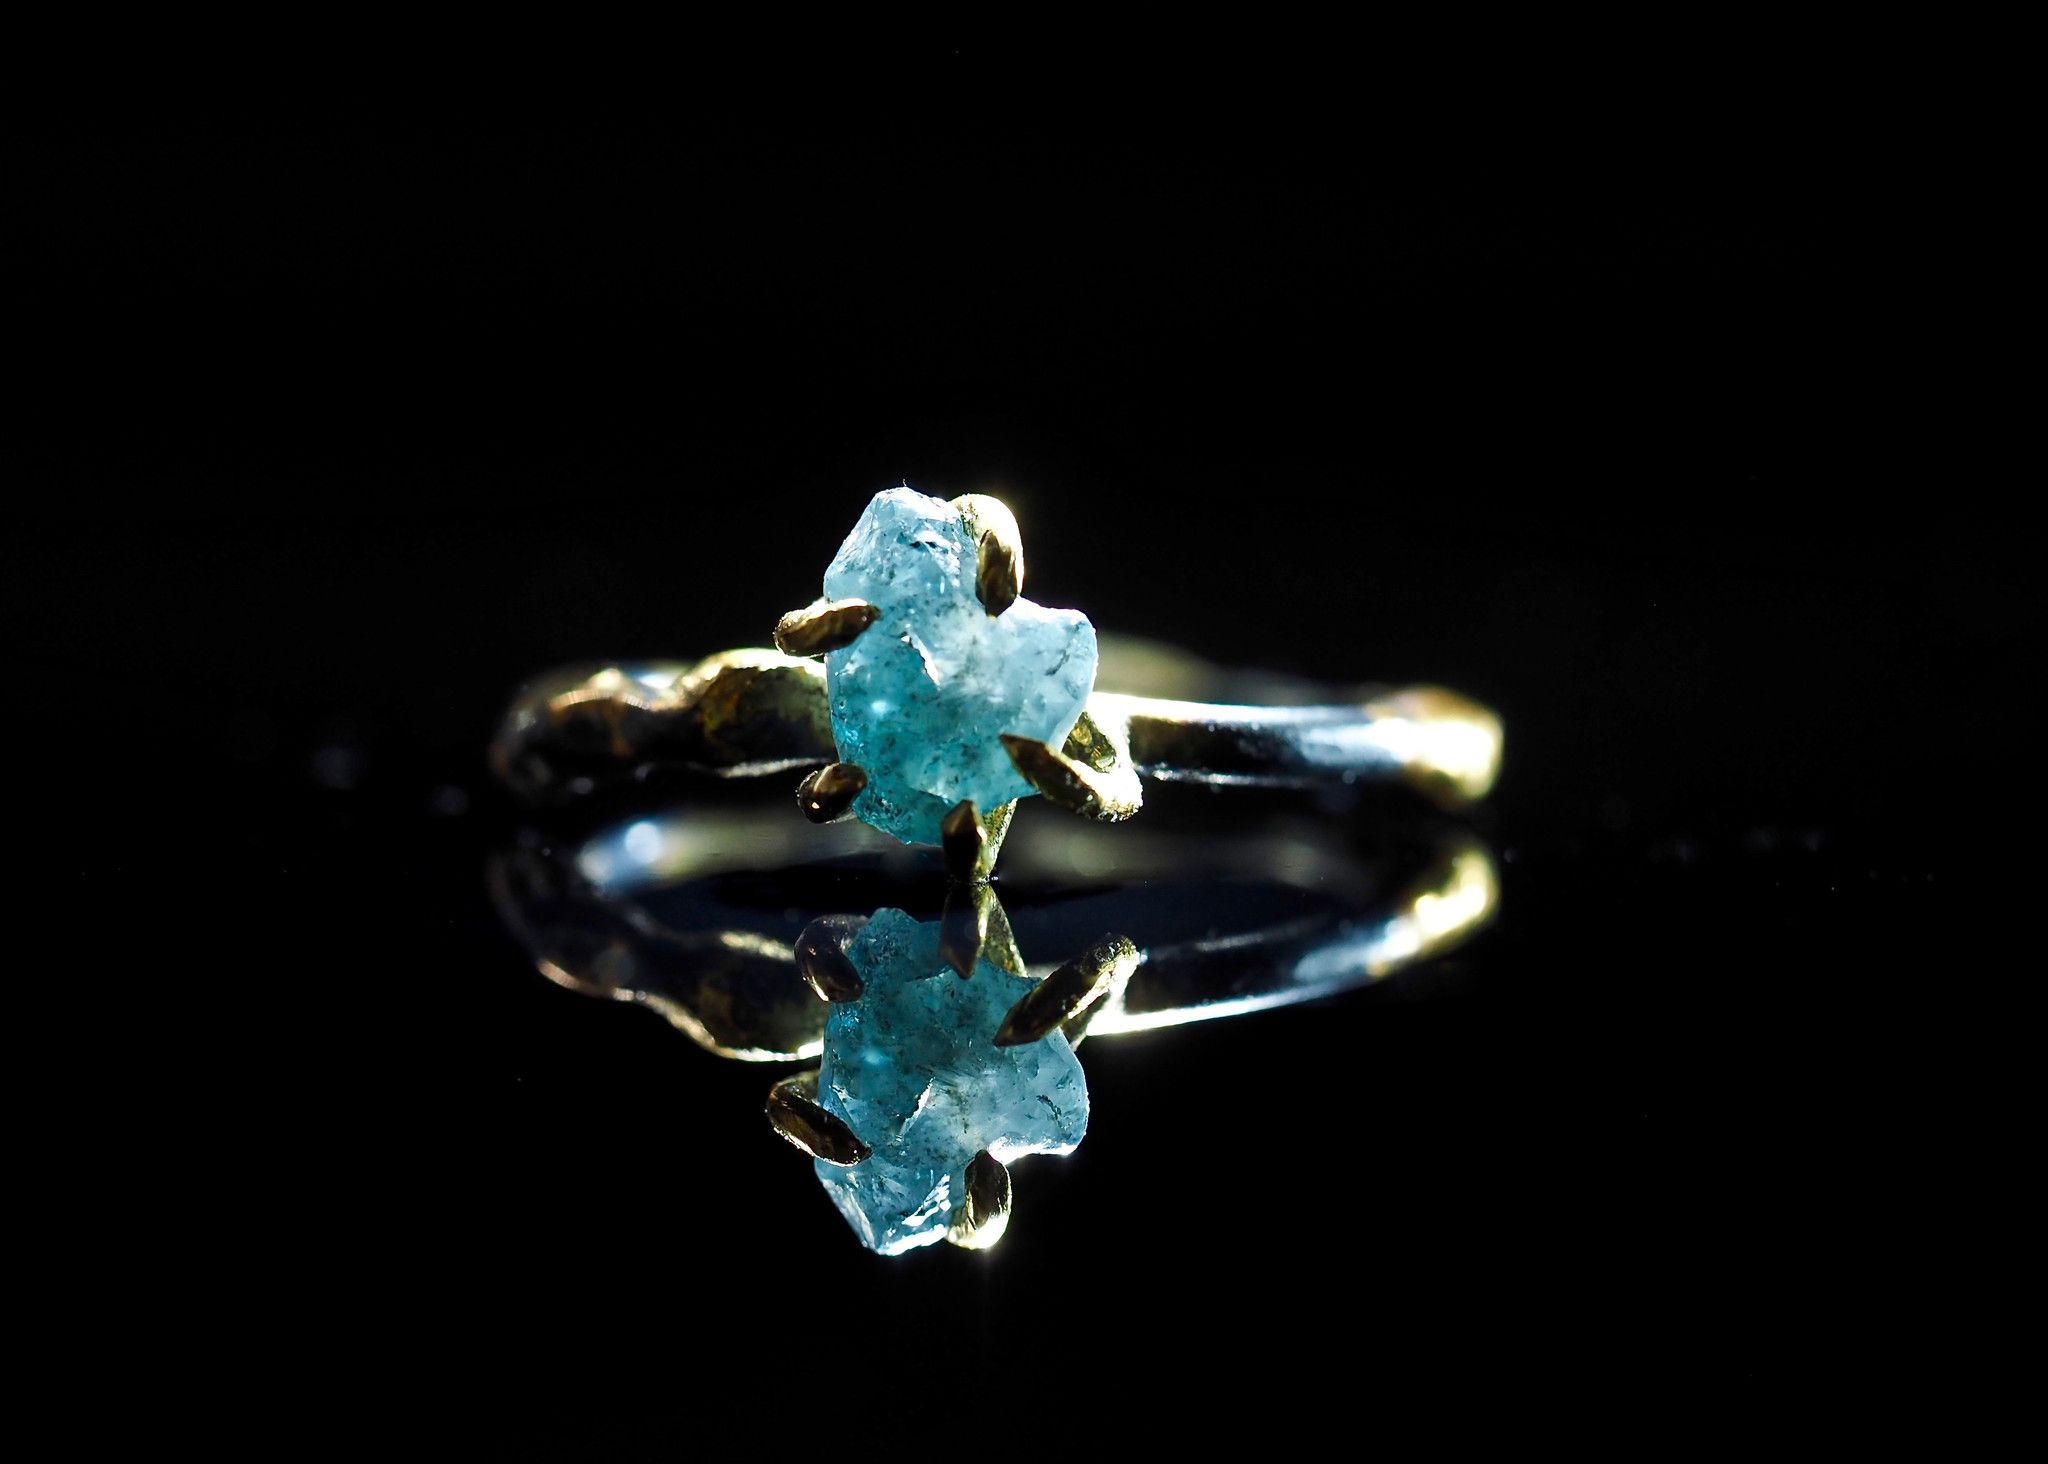 Raw Natural Uncut Conflict Free Blue Diamond In 18k Gold And Oxidized  Sterling Silver Women Wild Thing Engagement Ring